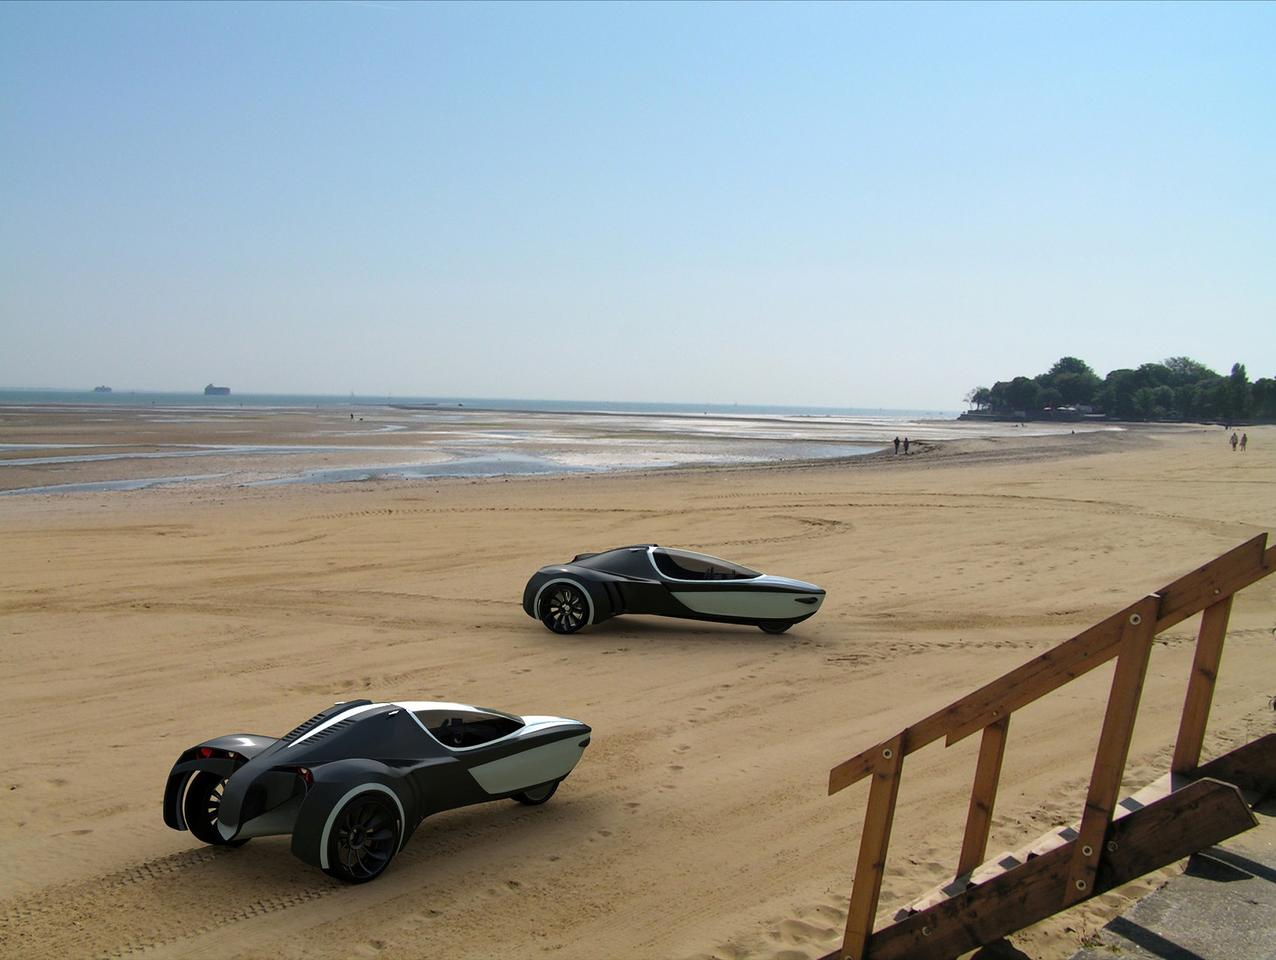 The Manta three-wheeled electric vehicle concept is good for land or sea